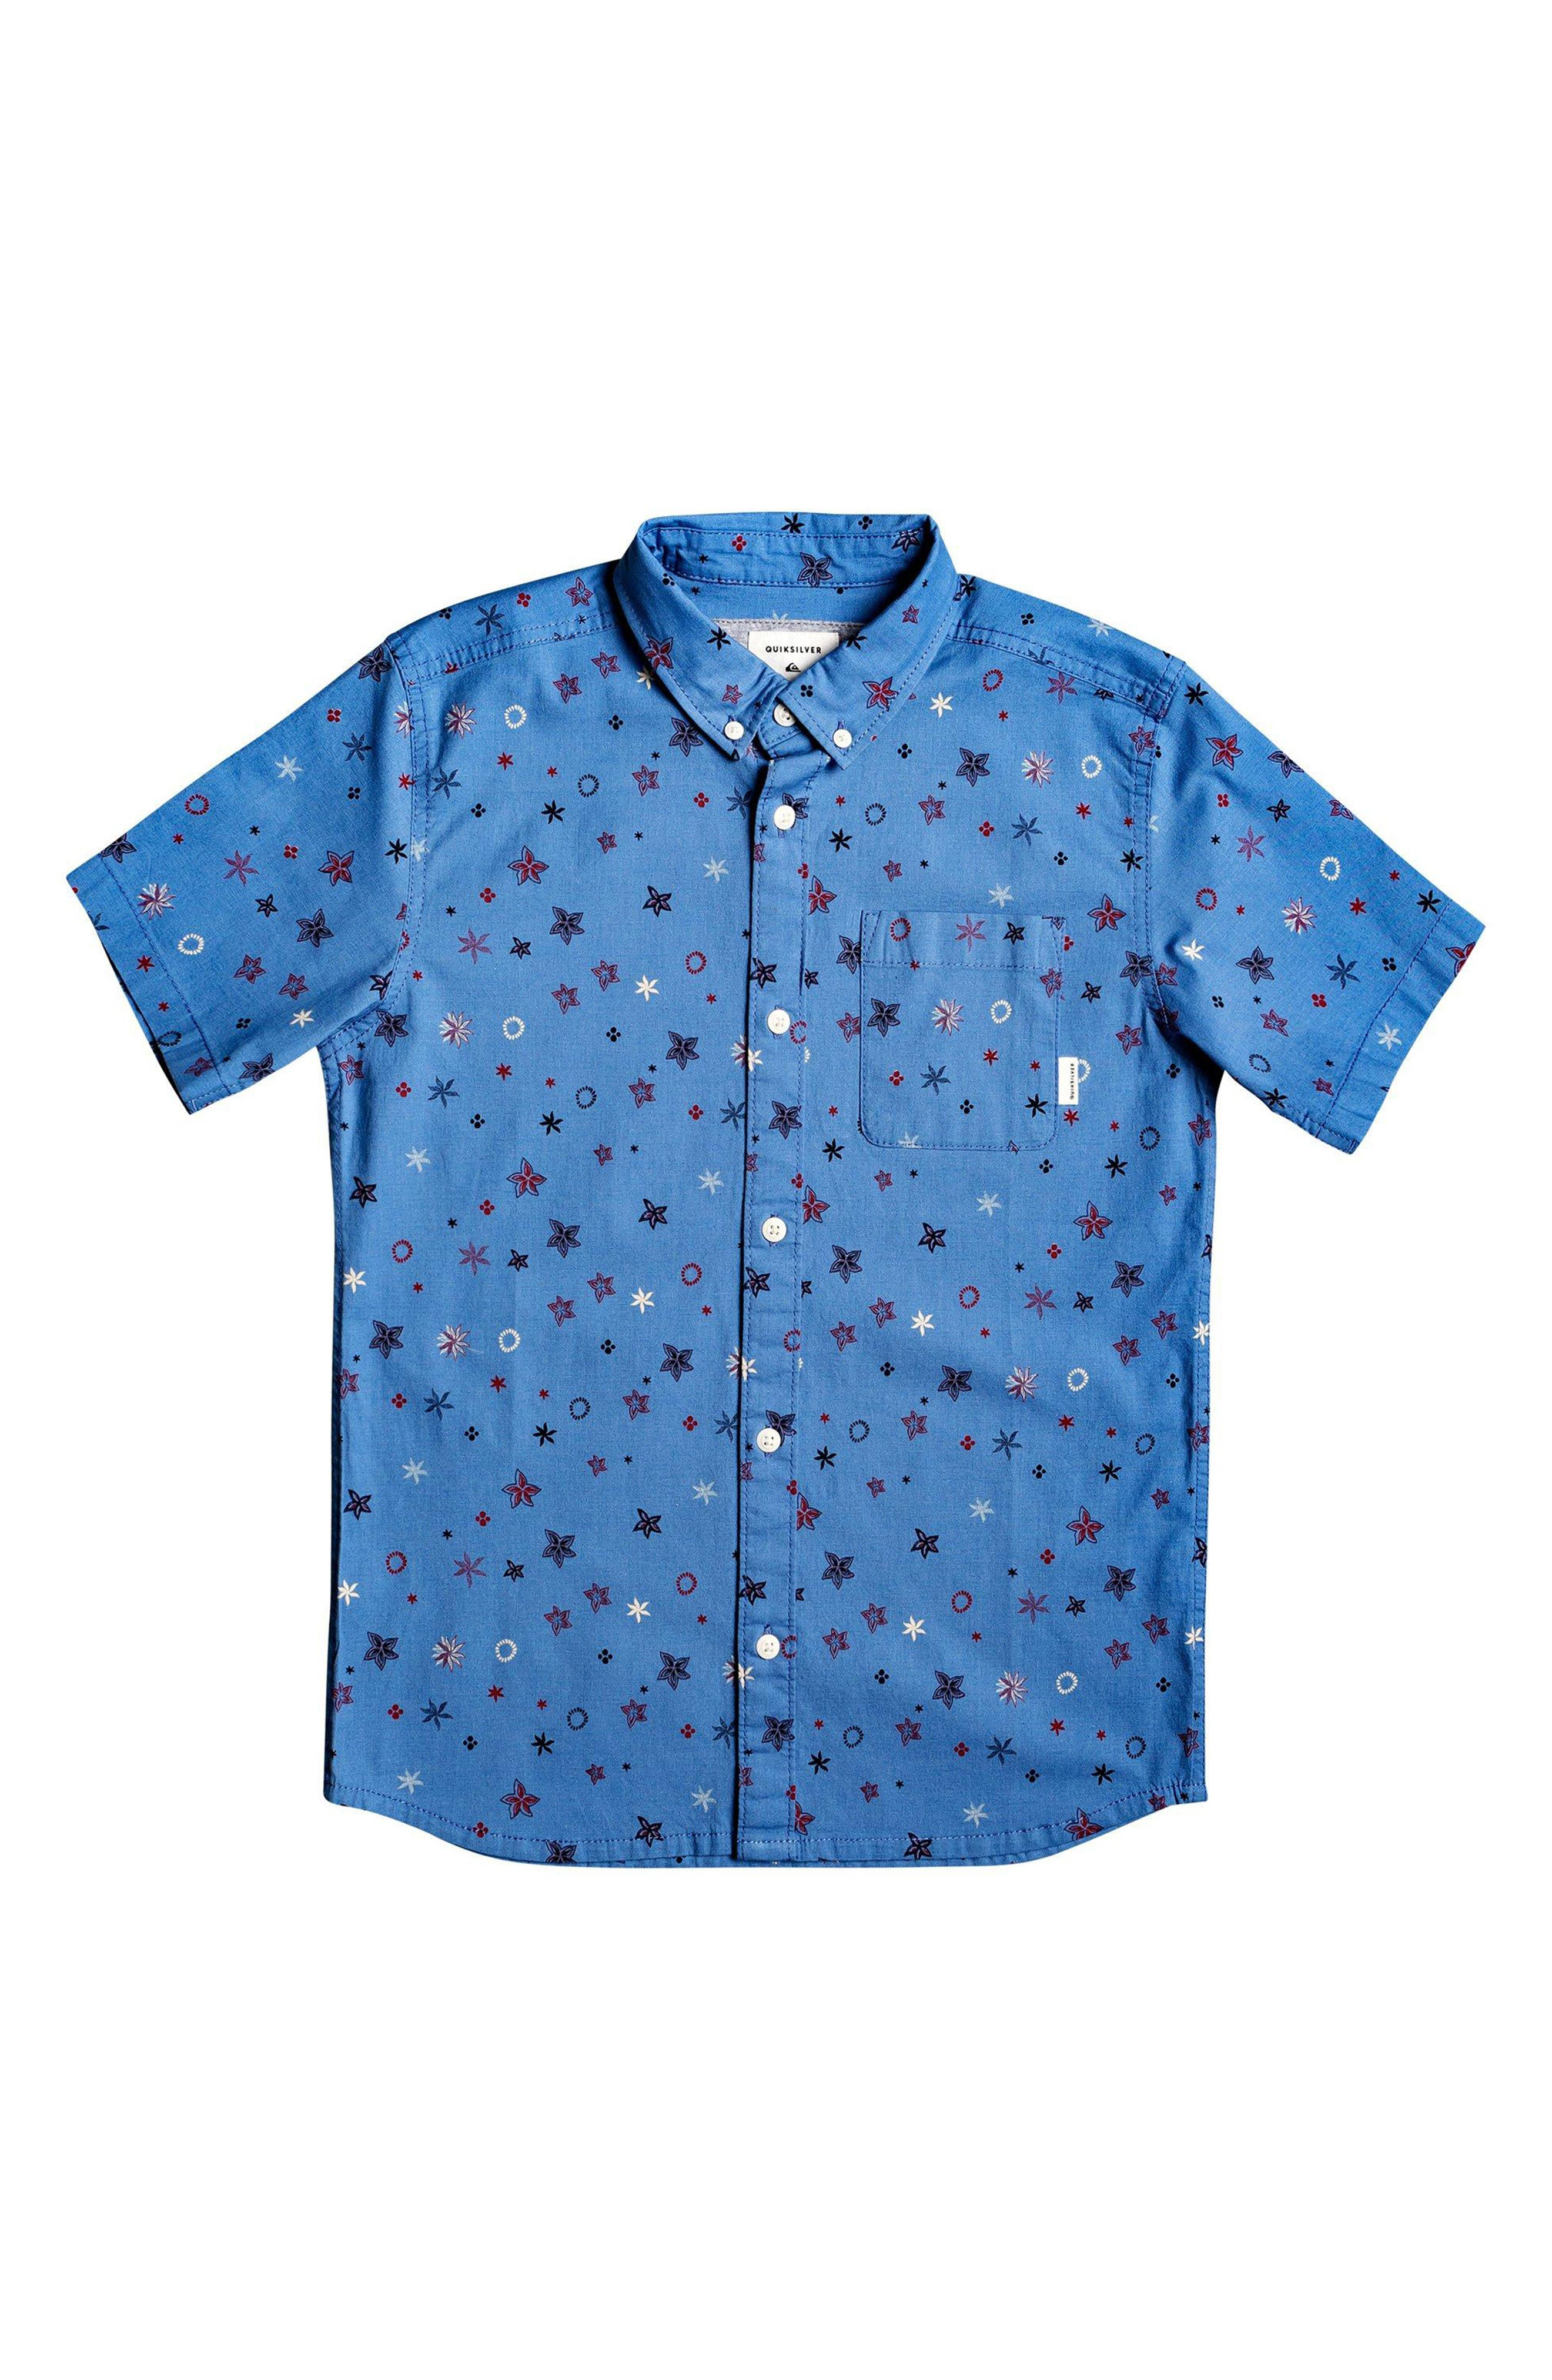 Boys Quiksilver Ditsy Print ButtonDown Shirt Size XL (16)  Blue